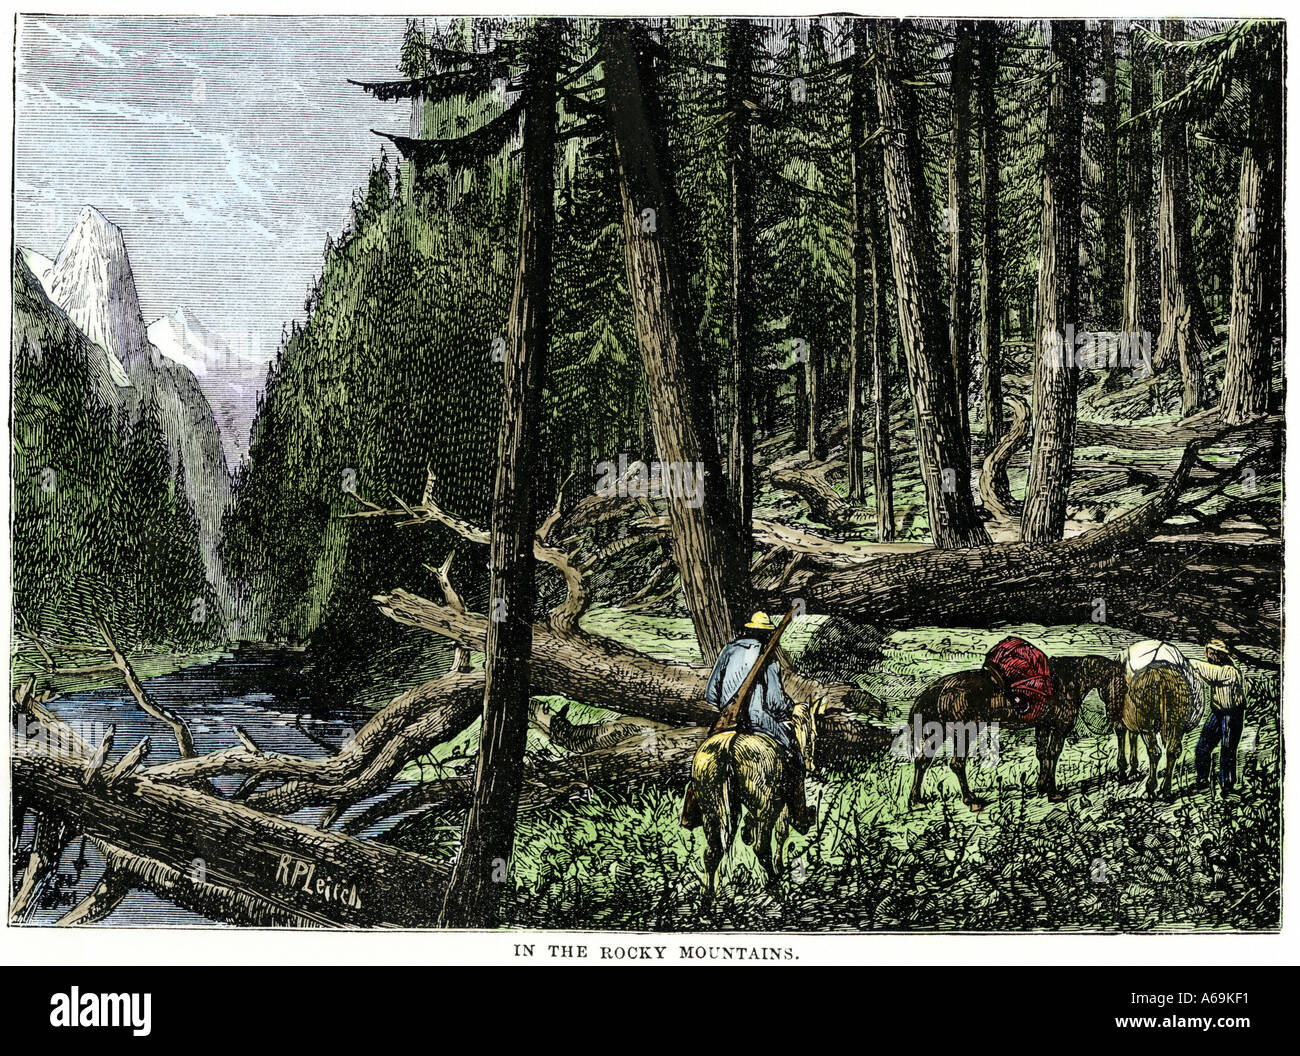 Pack train of fur traders in the Rocky Mountains 1800s. Hand-colored woodcut - Stock Image